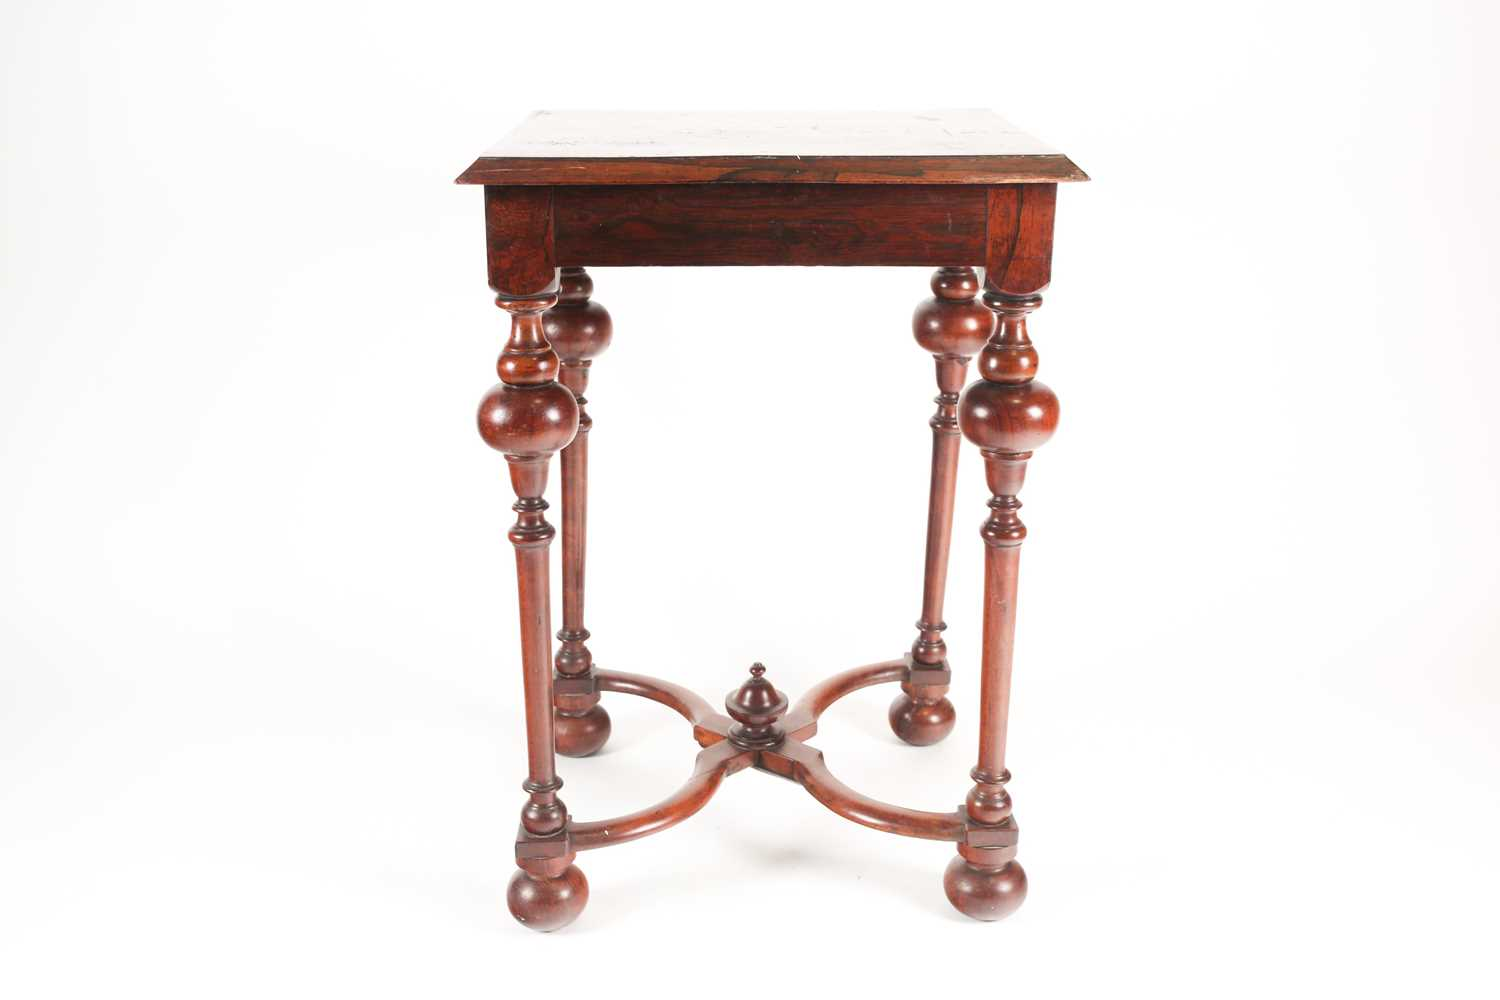 A late 17th-century style Dutch/ Portuguese rosewood, walnut and marquetry pedestal table. The top - Image 2 of 5